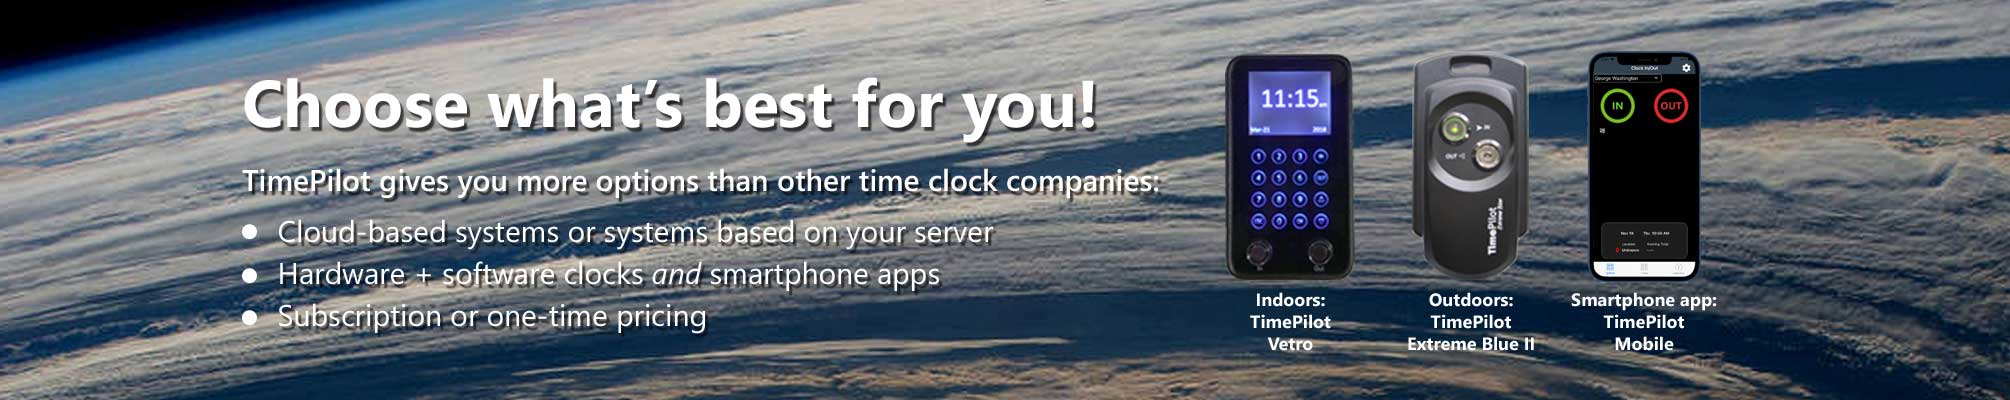 Choose what's best for you: TimePilot gives you more options than other time clock companies.